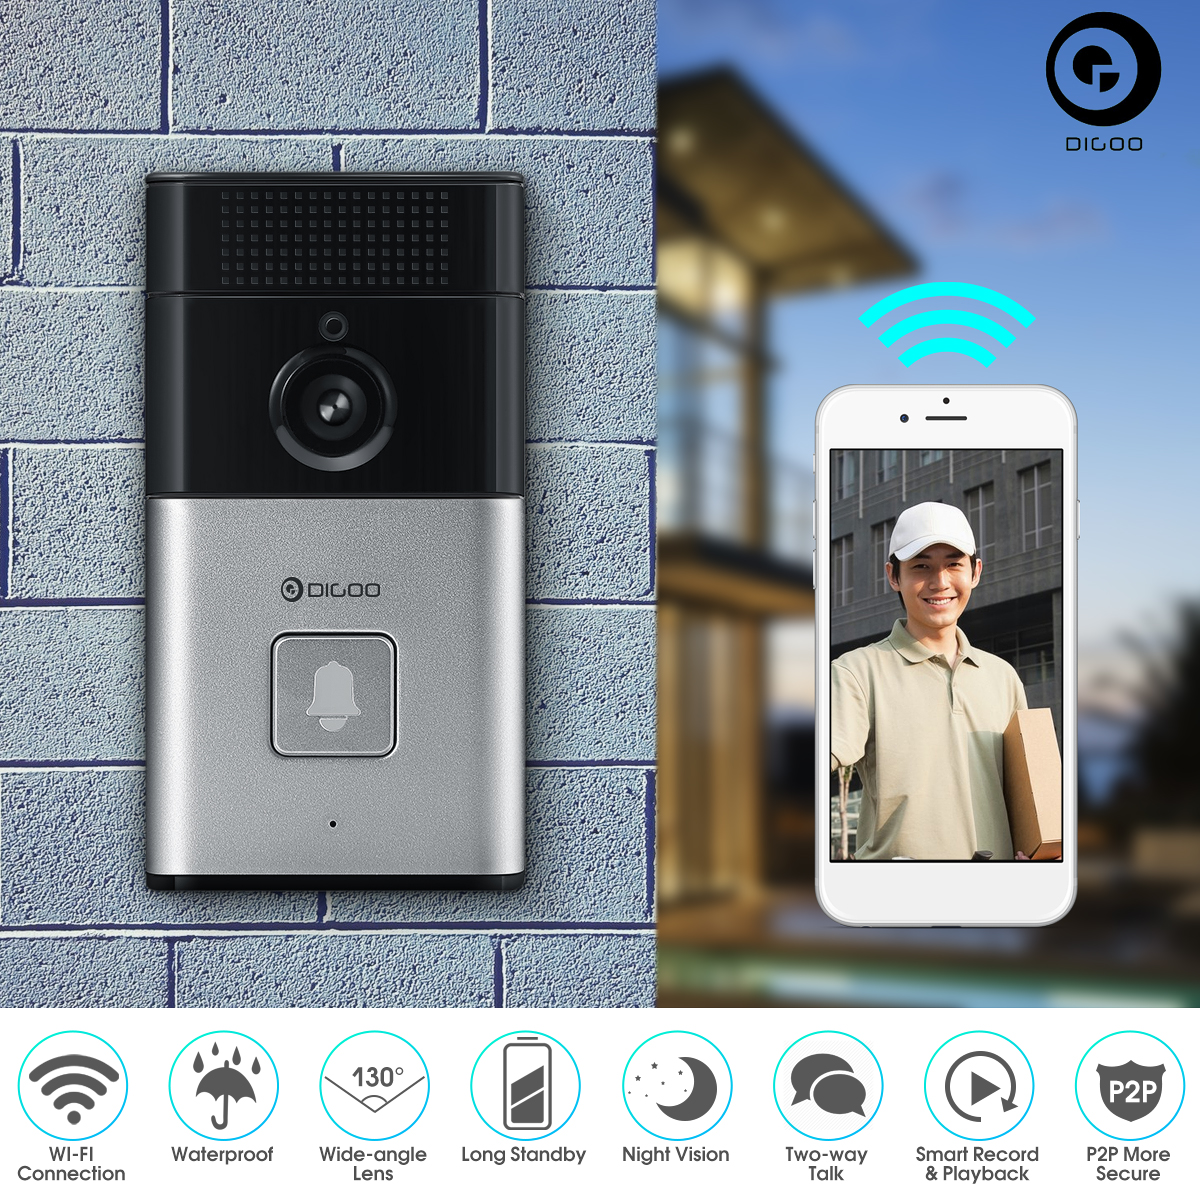 DIGOO Wireless WIFI Video Doorbell, Smart Doorbell 720P HD Security Camera,Real-Time Two-Way Talk and Video, Night Vision, PIR Motion Detection and App Control for IOS and Android